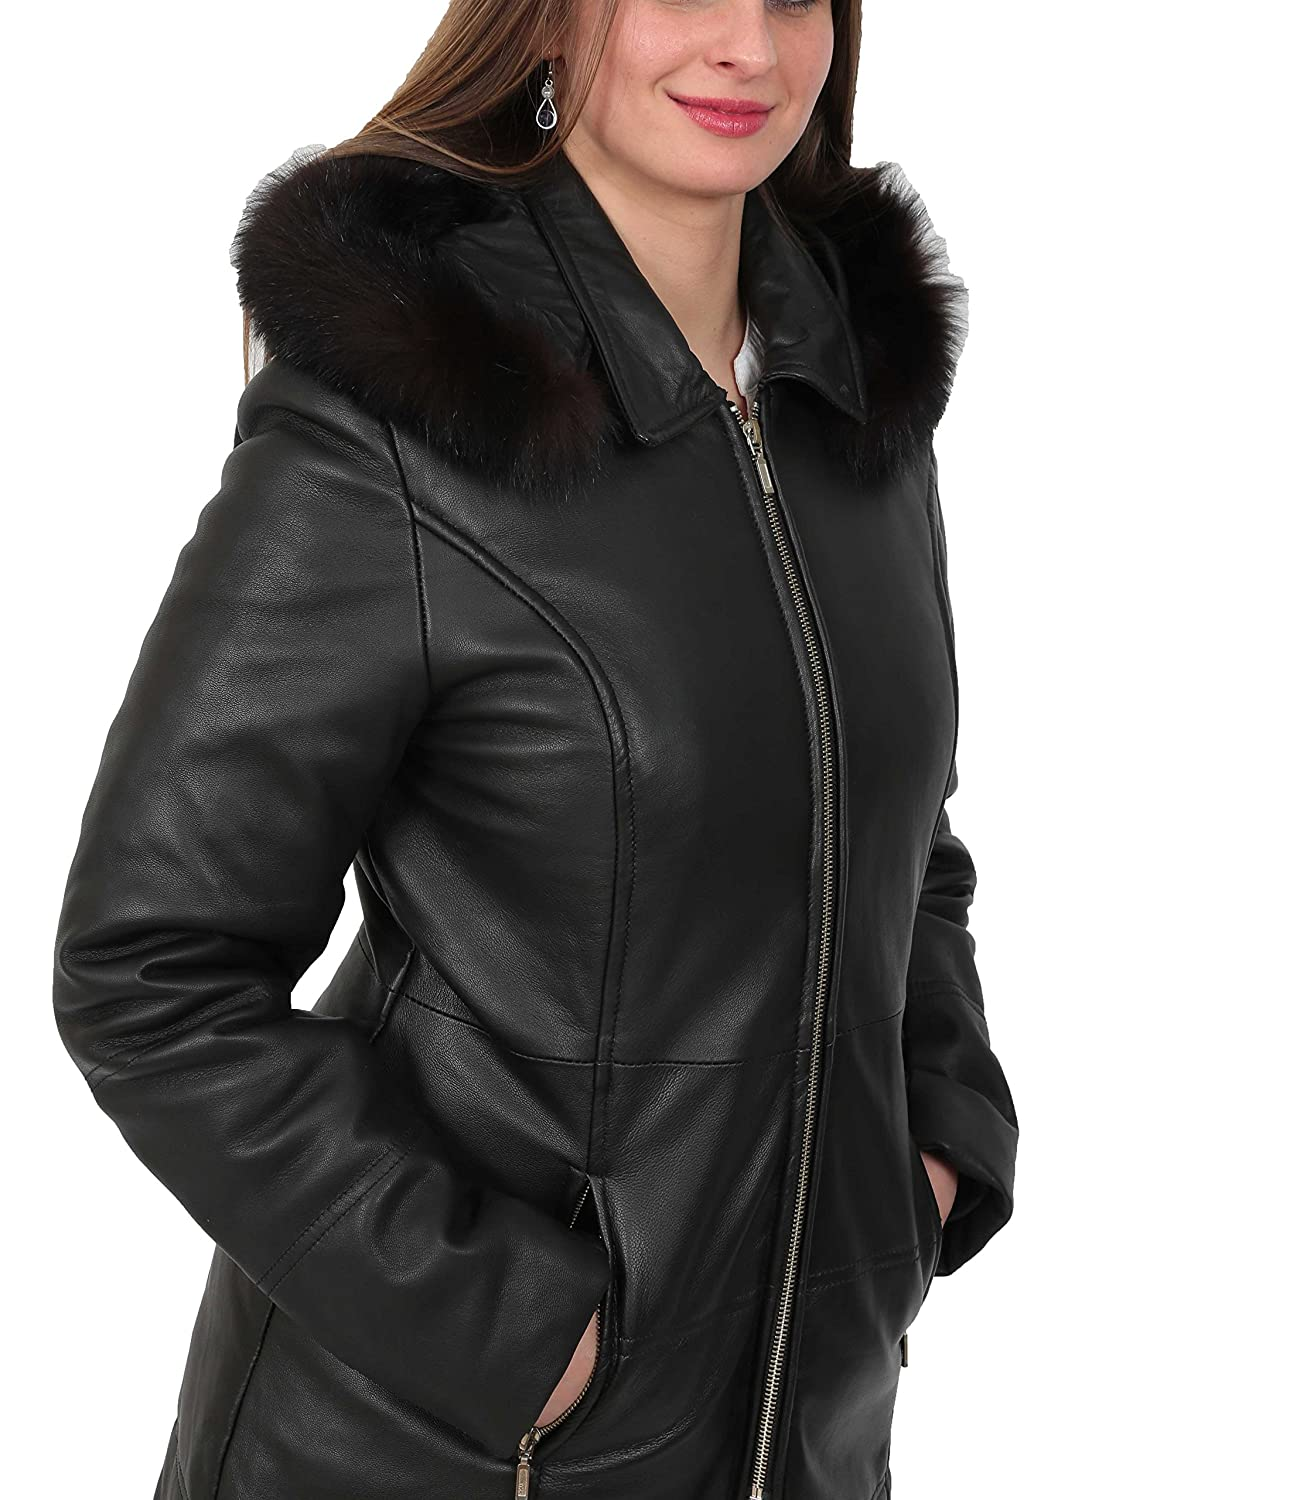 online sale professional sale top-rated cheap Ladies Soft Leather Puffer Coat 3/4 Length Padded Fitted Hooded Parka Lisa  Black